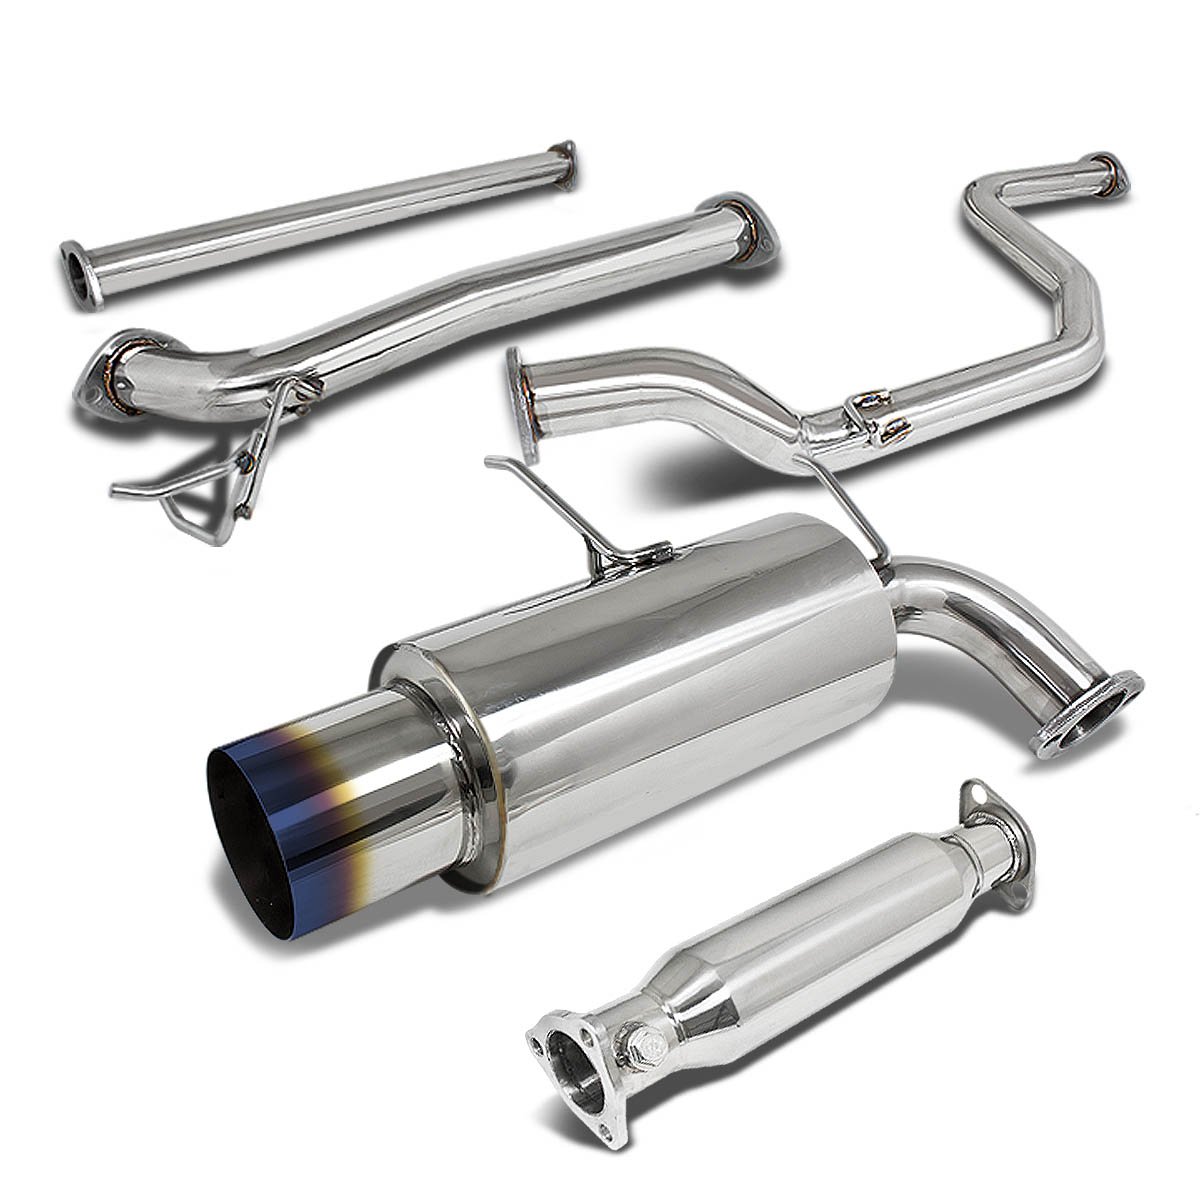 90-93 Acura Integra Racing Catback Exhaust System 4.5